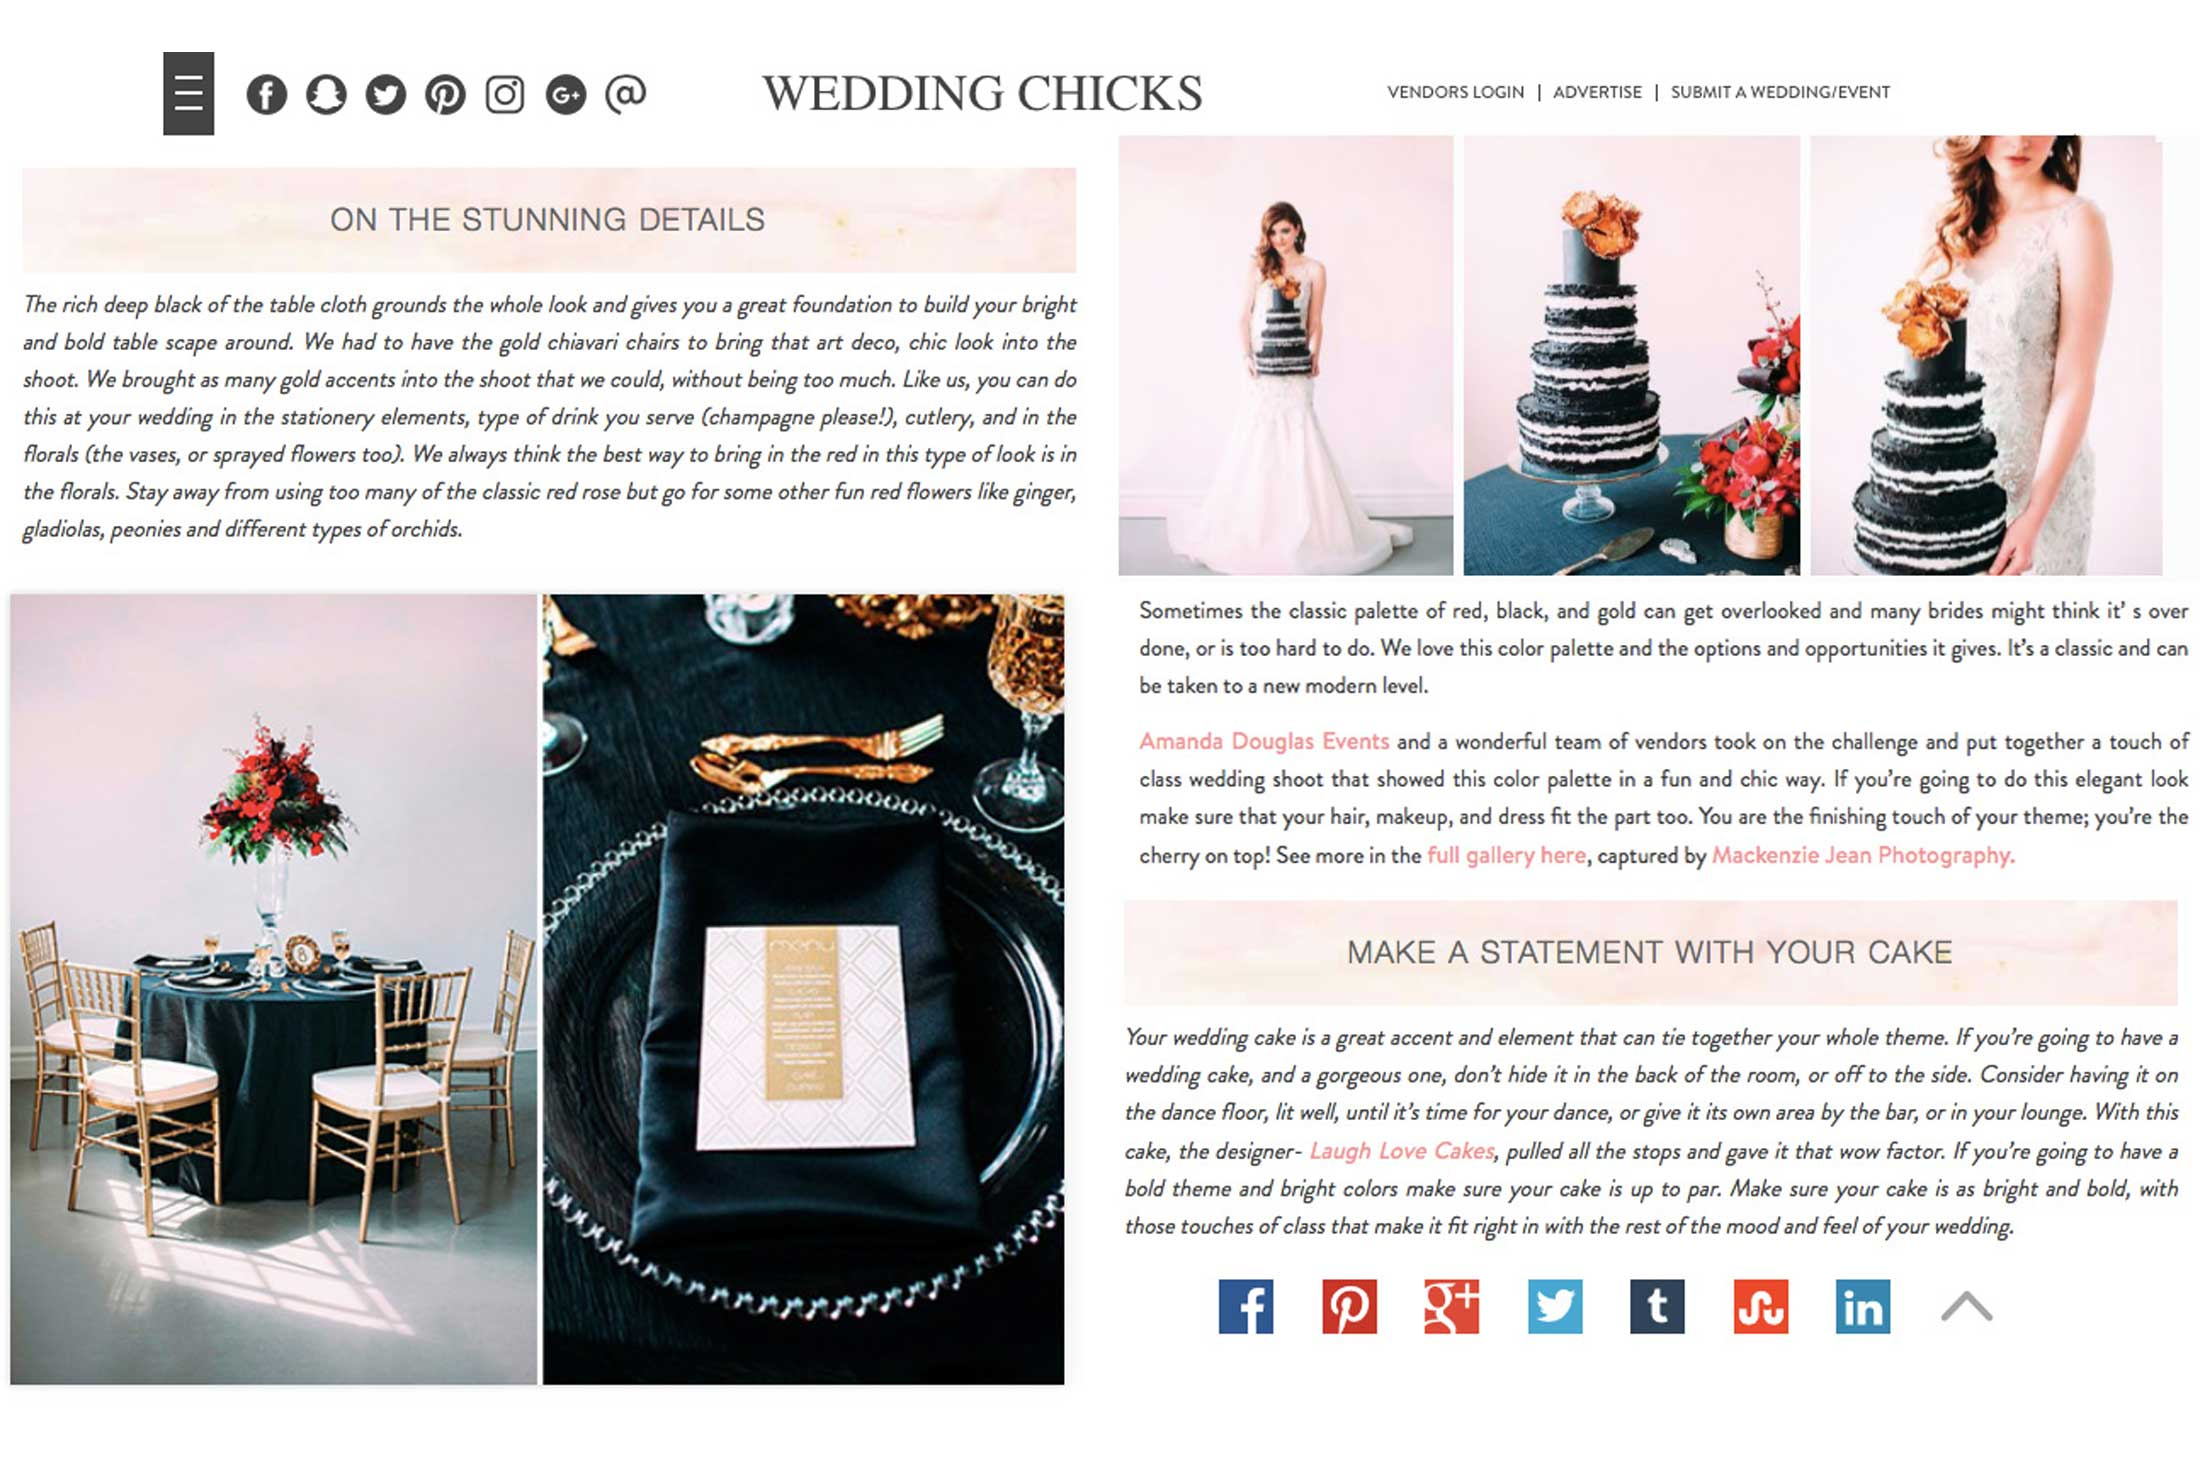 Winnipeg Wedding Planner and Inspiration Feature: All That Glitters